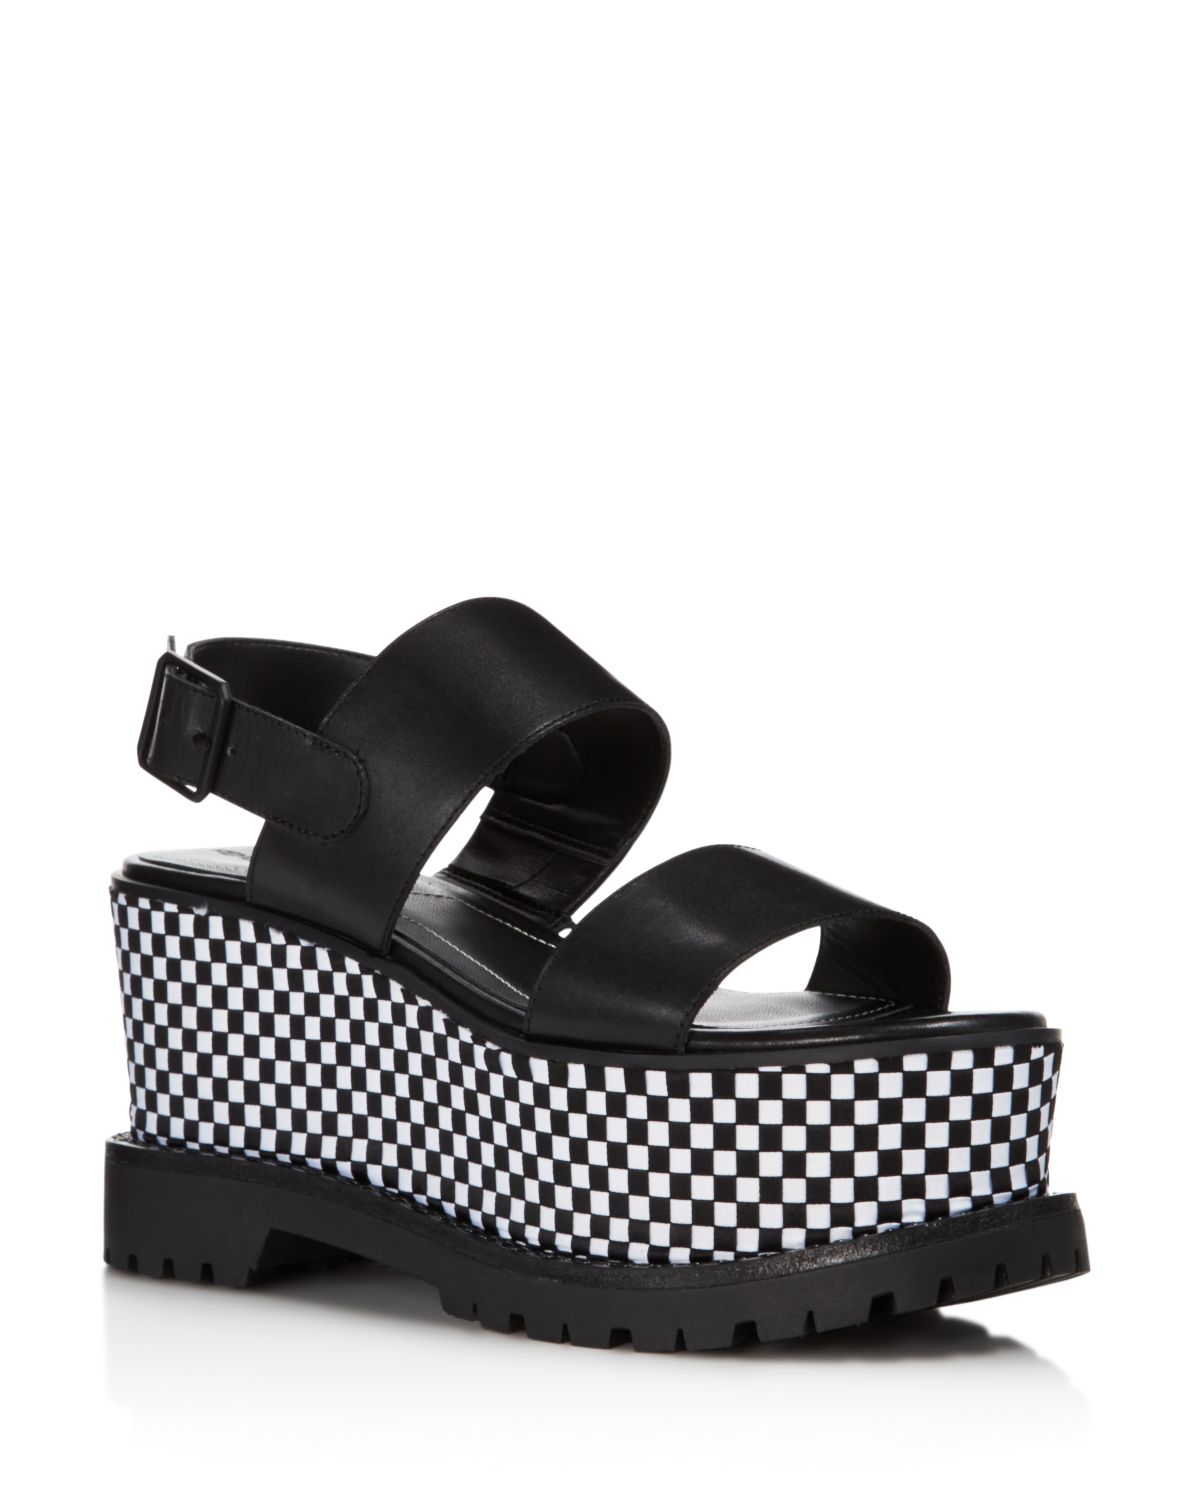 Kendall And Kylie Women's Cady Leather Platform Sandals